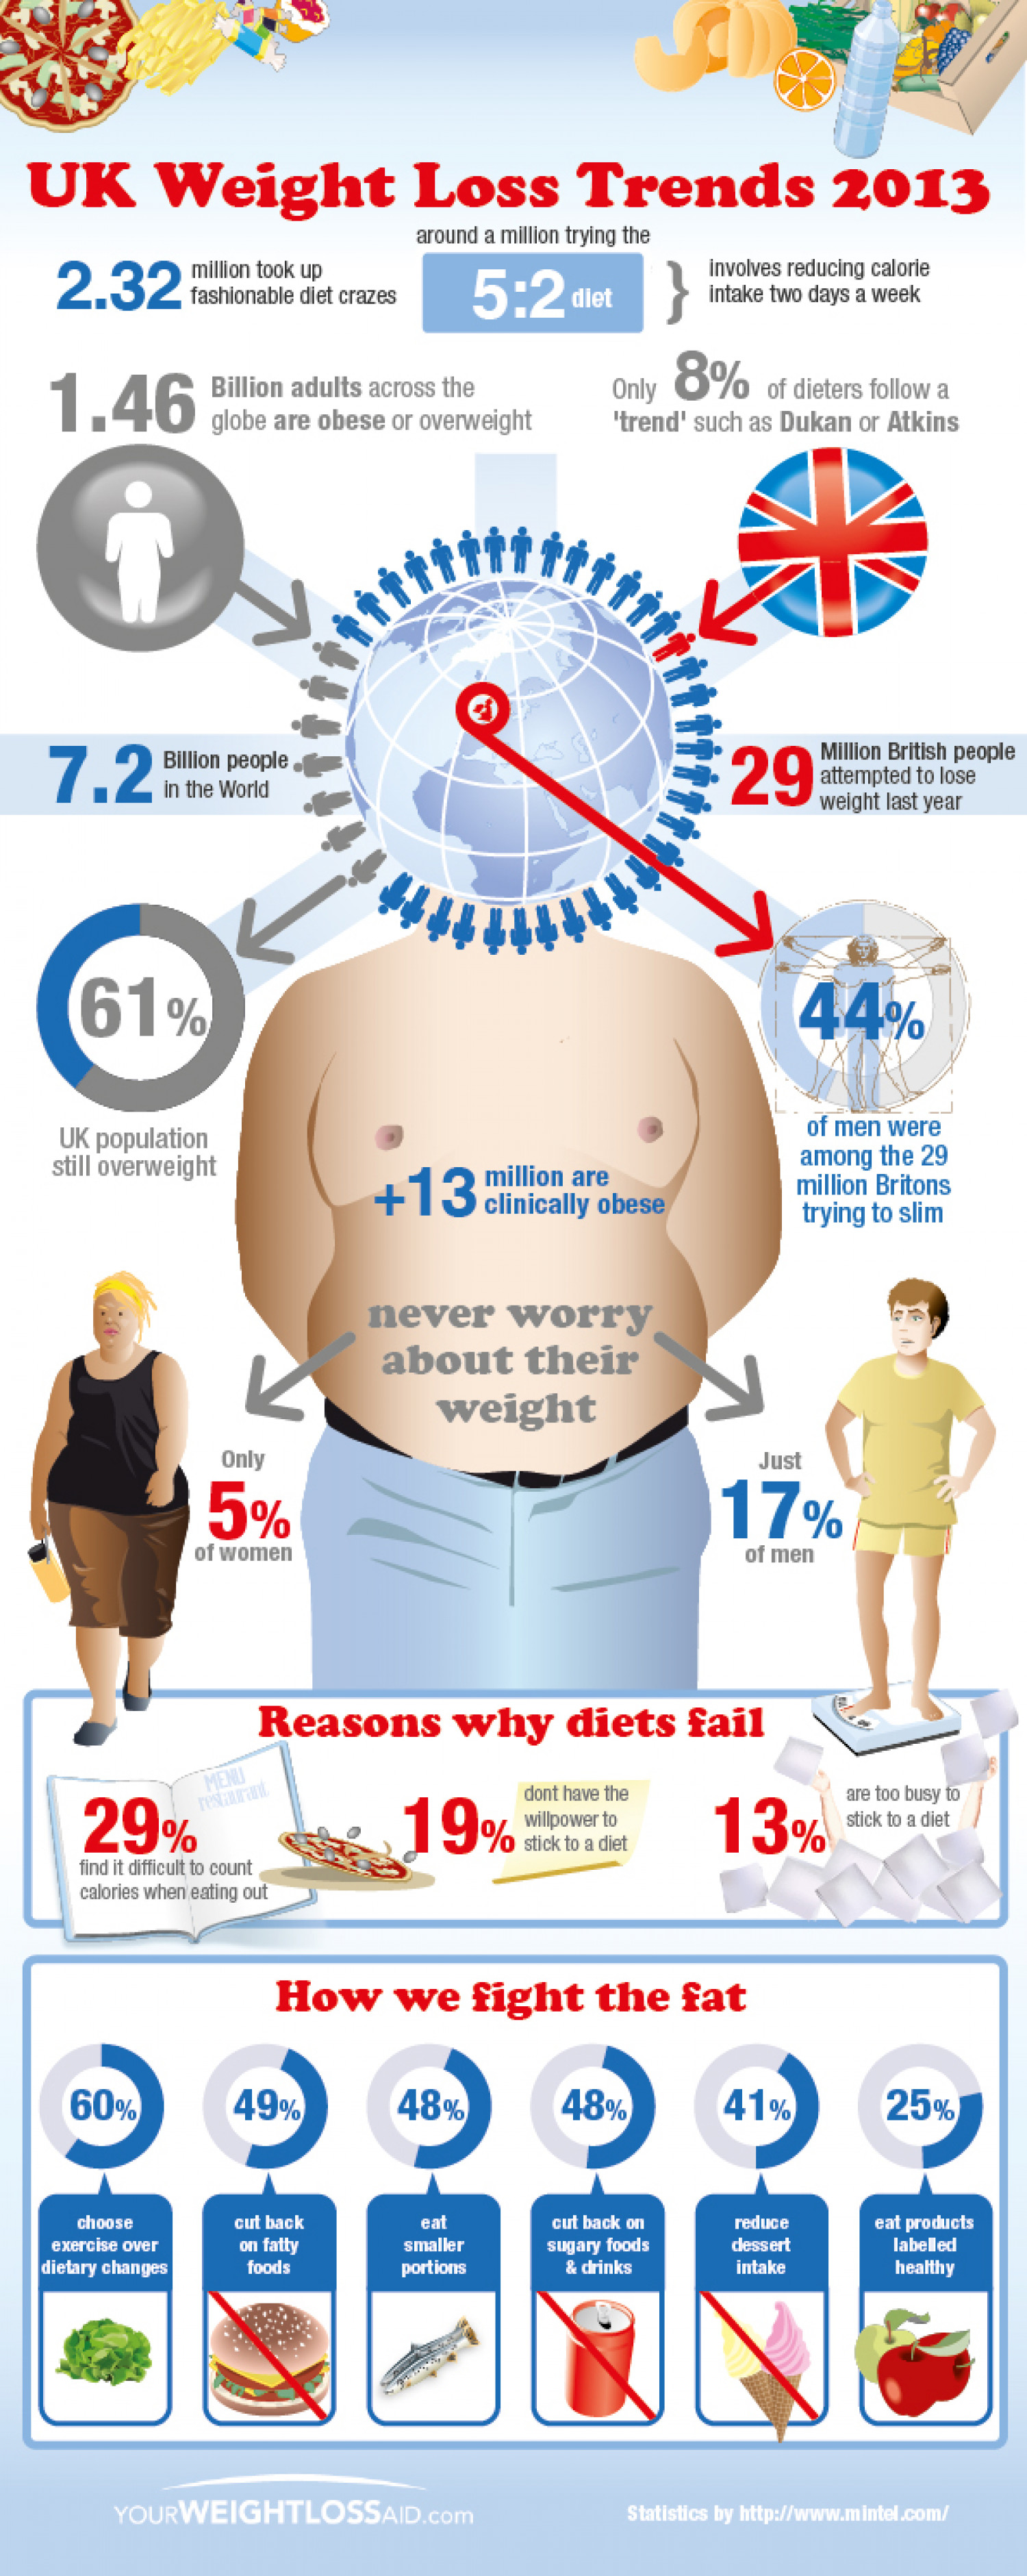 UK Weight Loss Trends 2013 Infographic